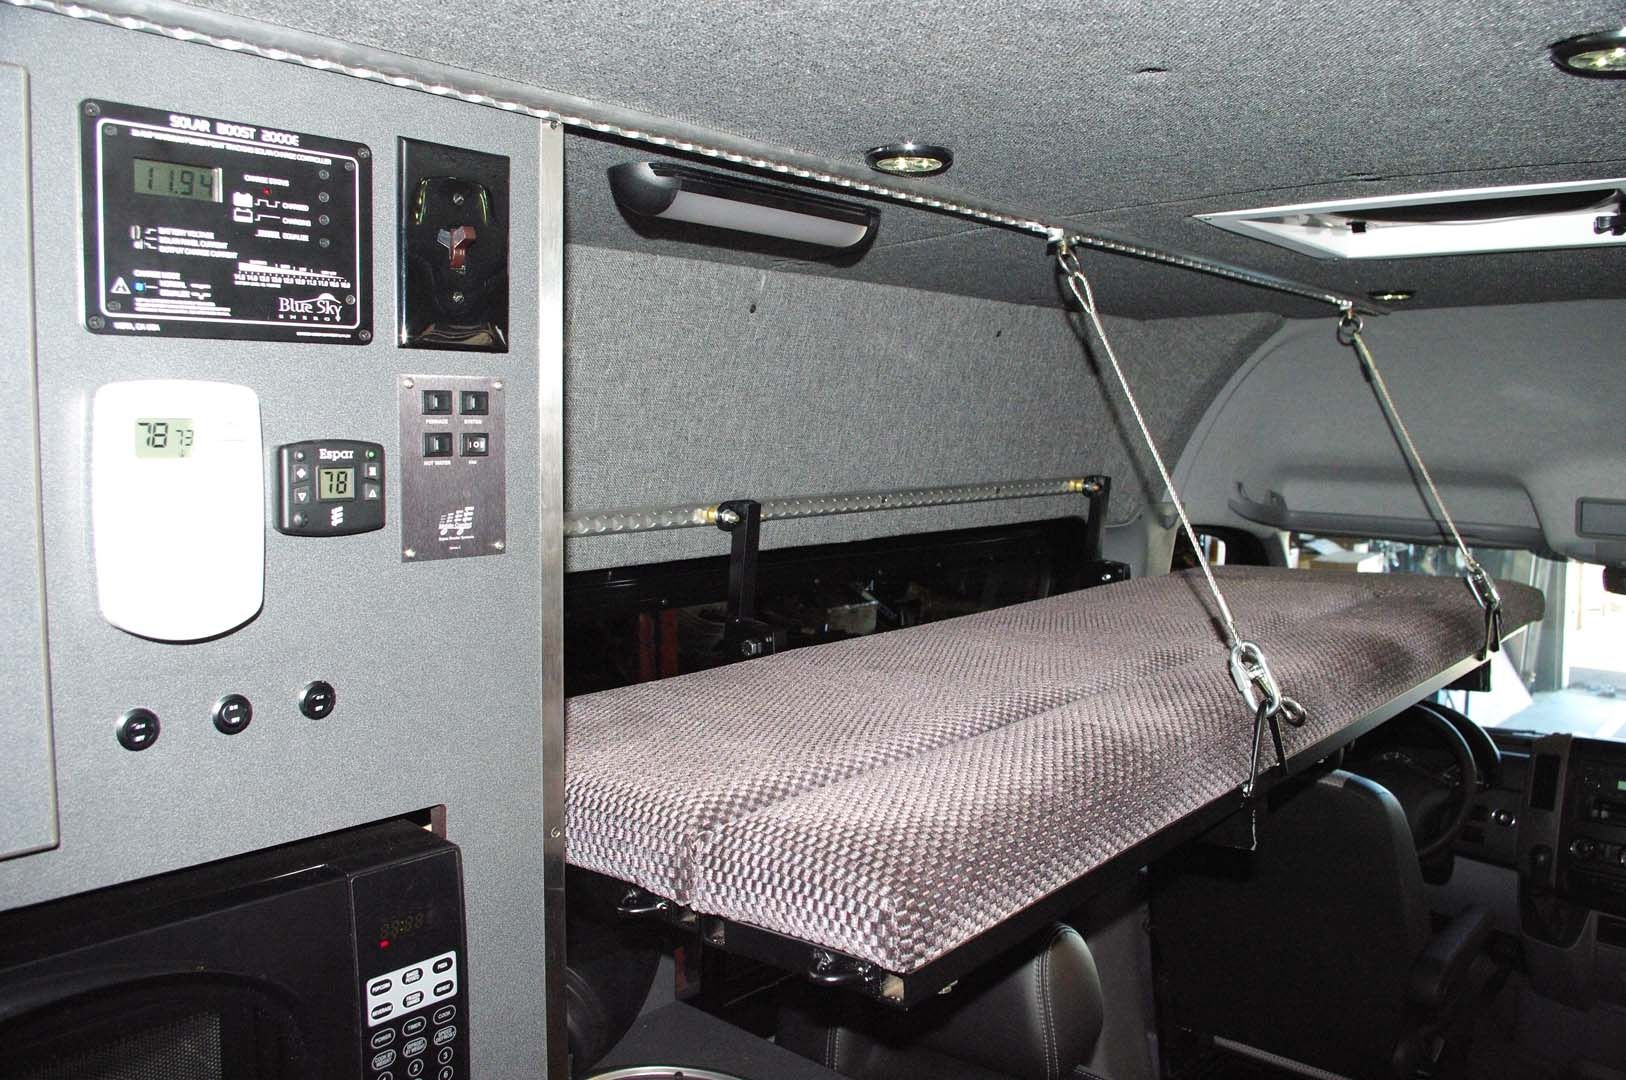 Fold Up Kids Bed Fold Down Bed In A Sprinter Camper Van Conversion